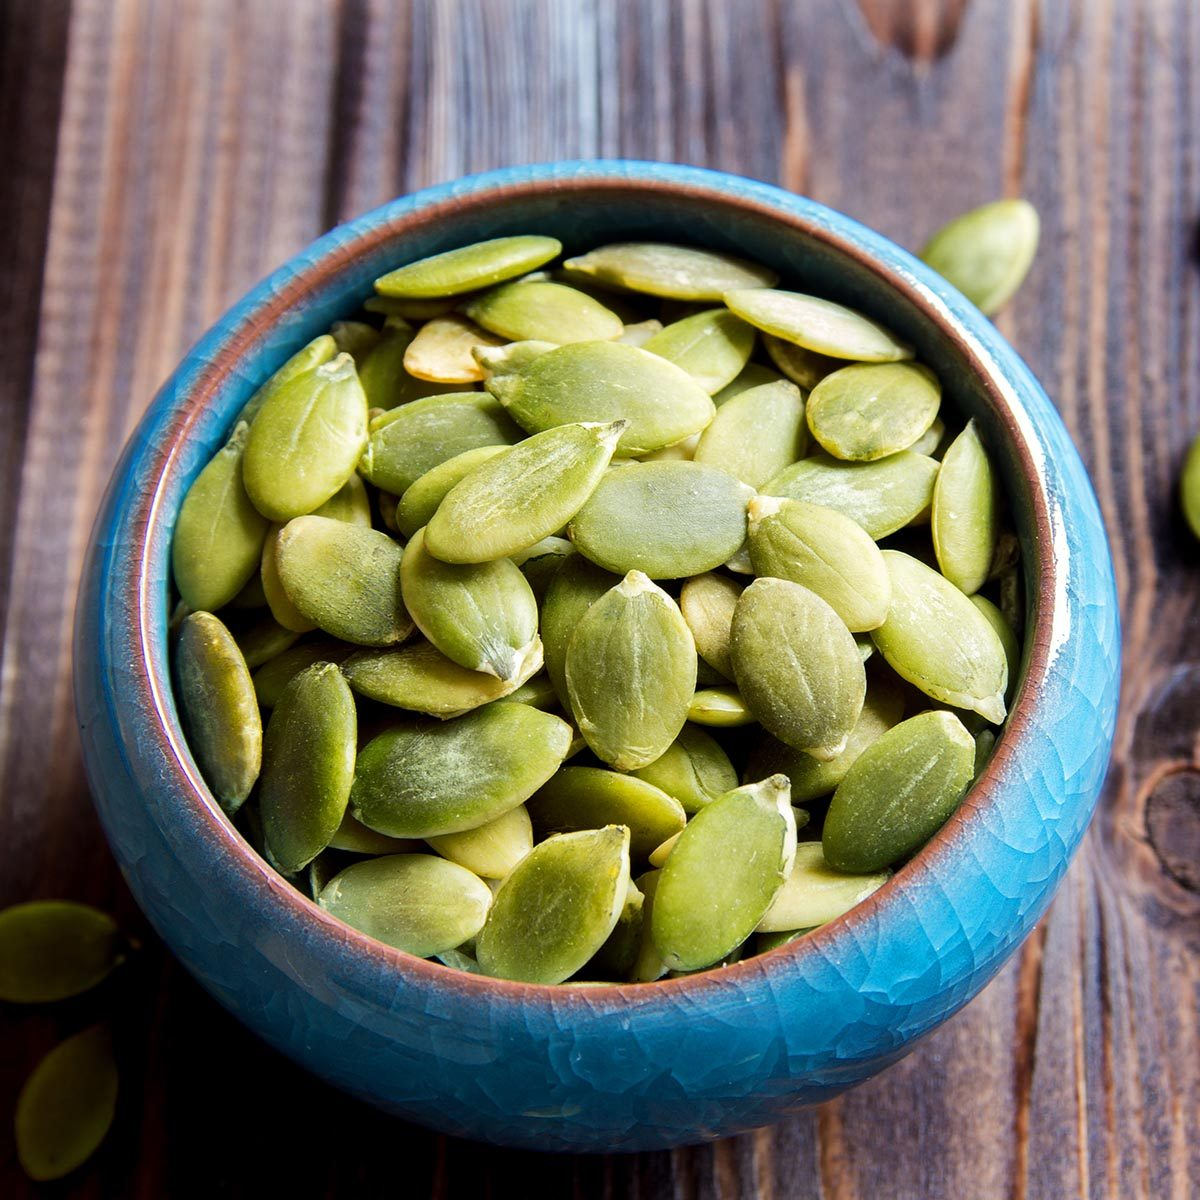 Pumpkin seeds in blue bowl over wooden background close up